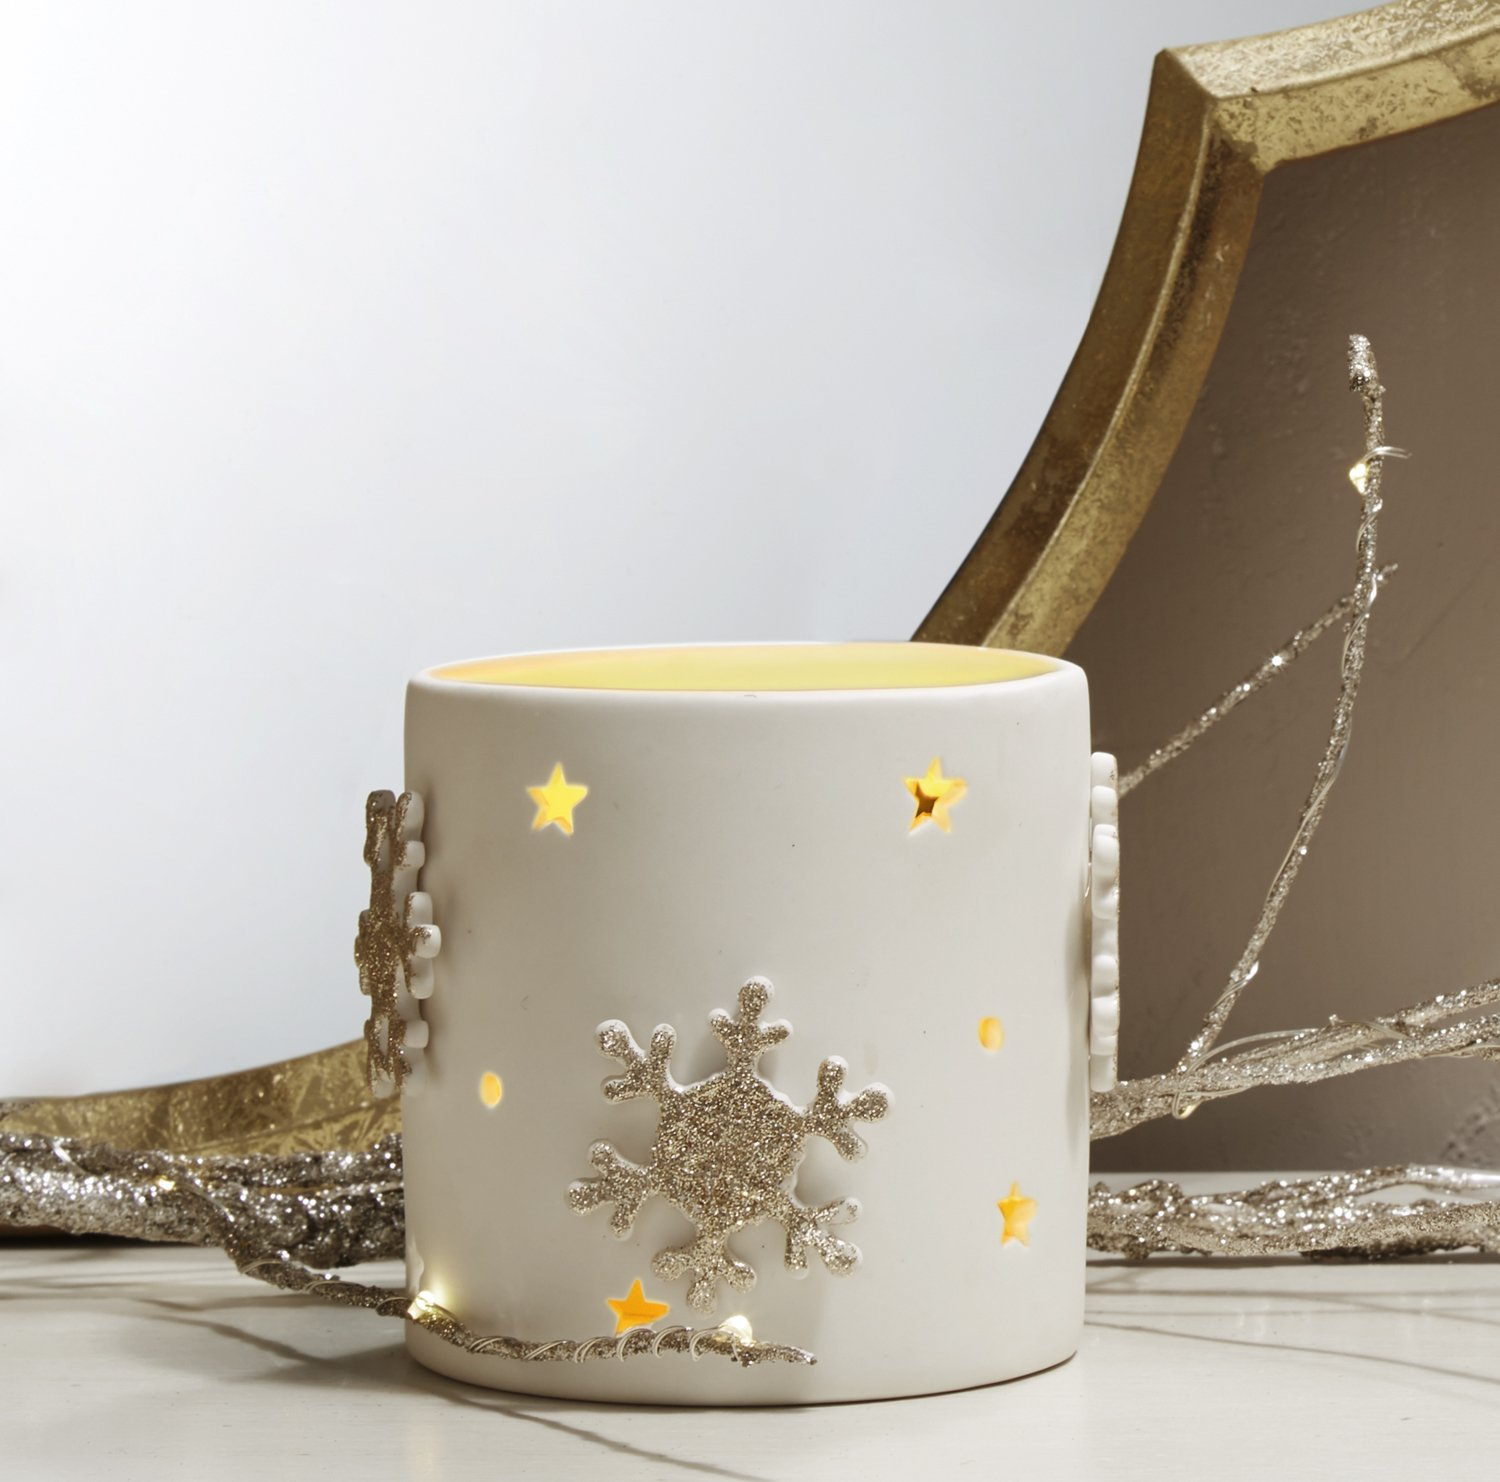 3.5'' Pillar Candle Holder, White Porcelain, Gold Snowflake Detail - For Winter, Christmas and Holiday Decor